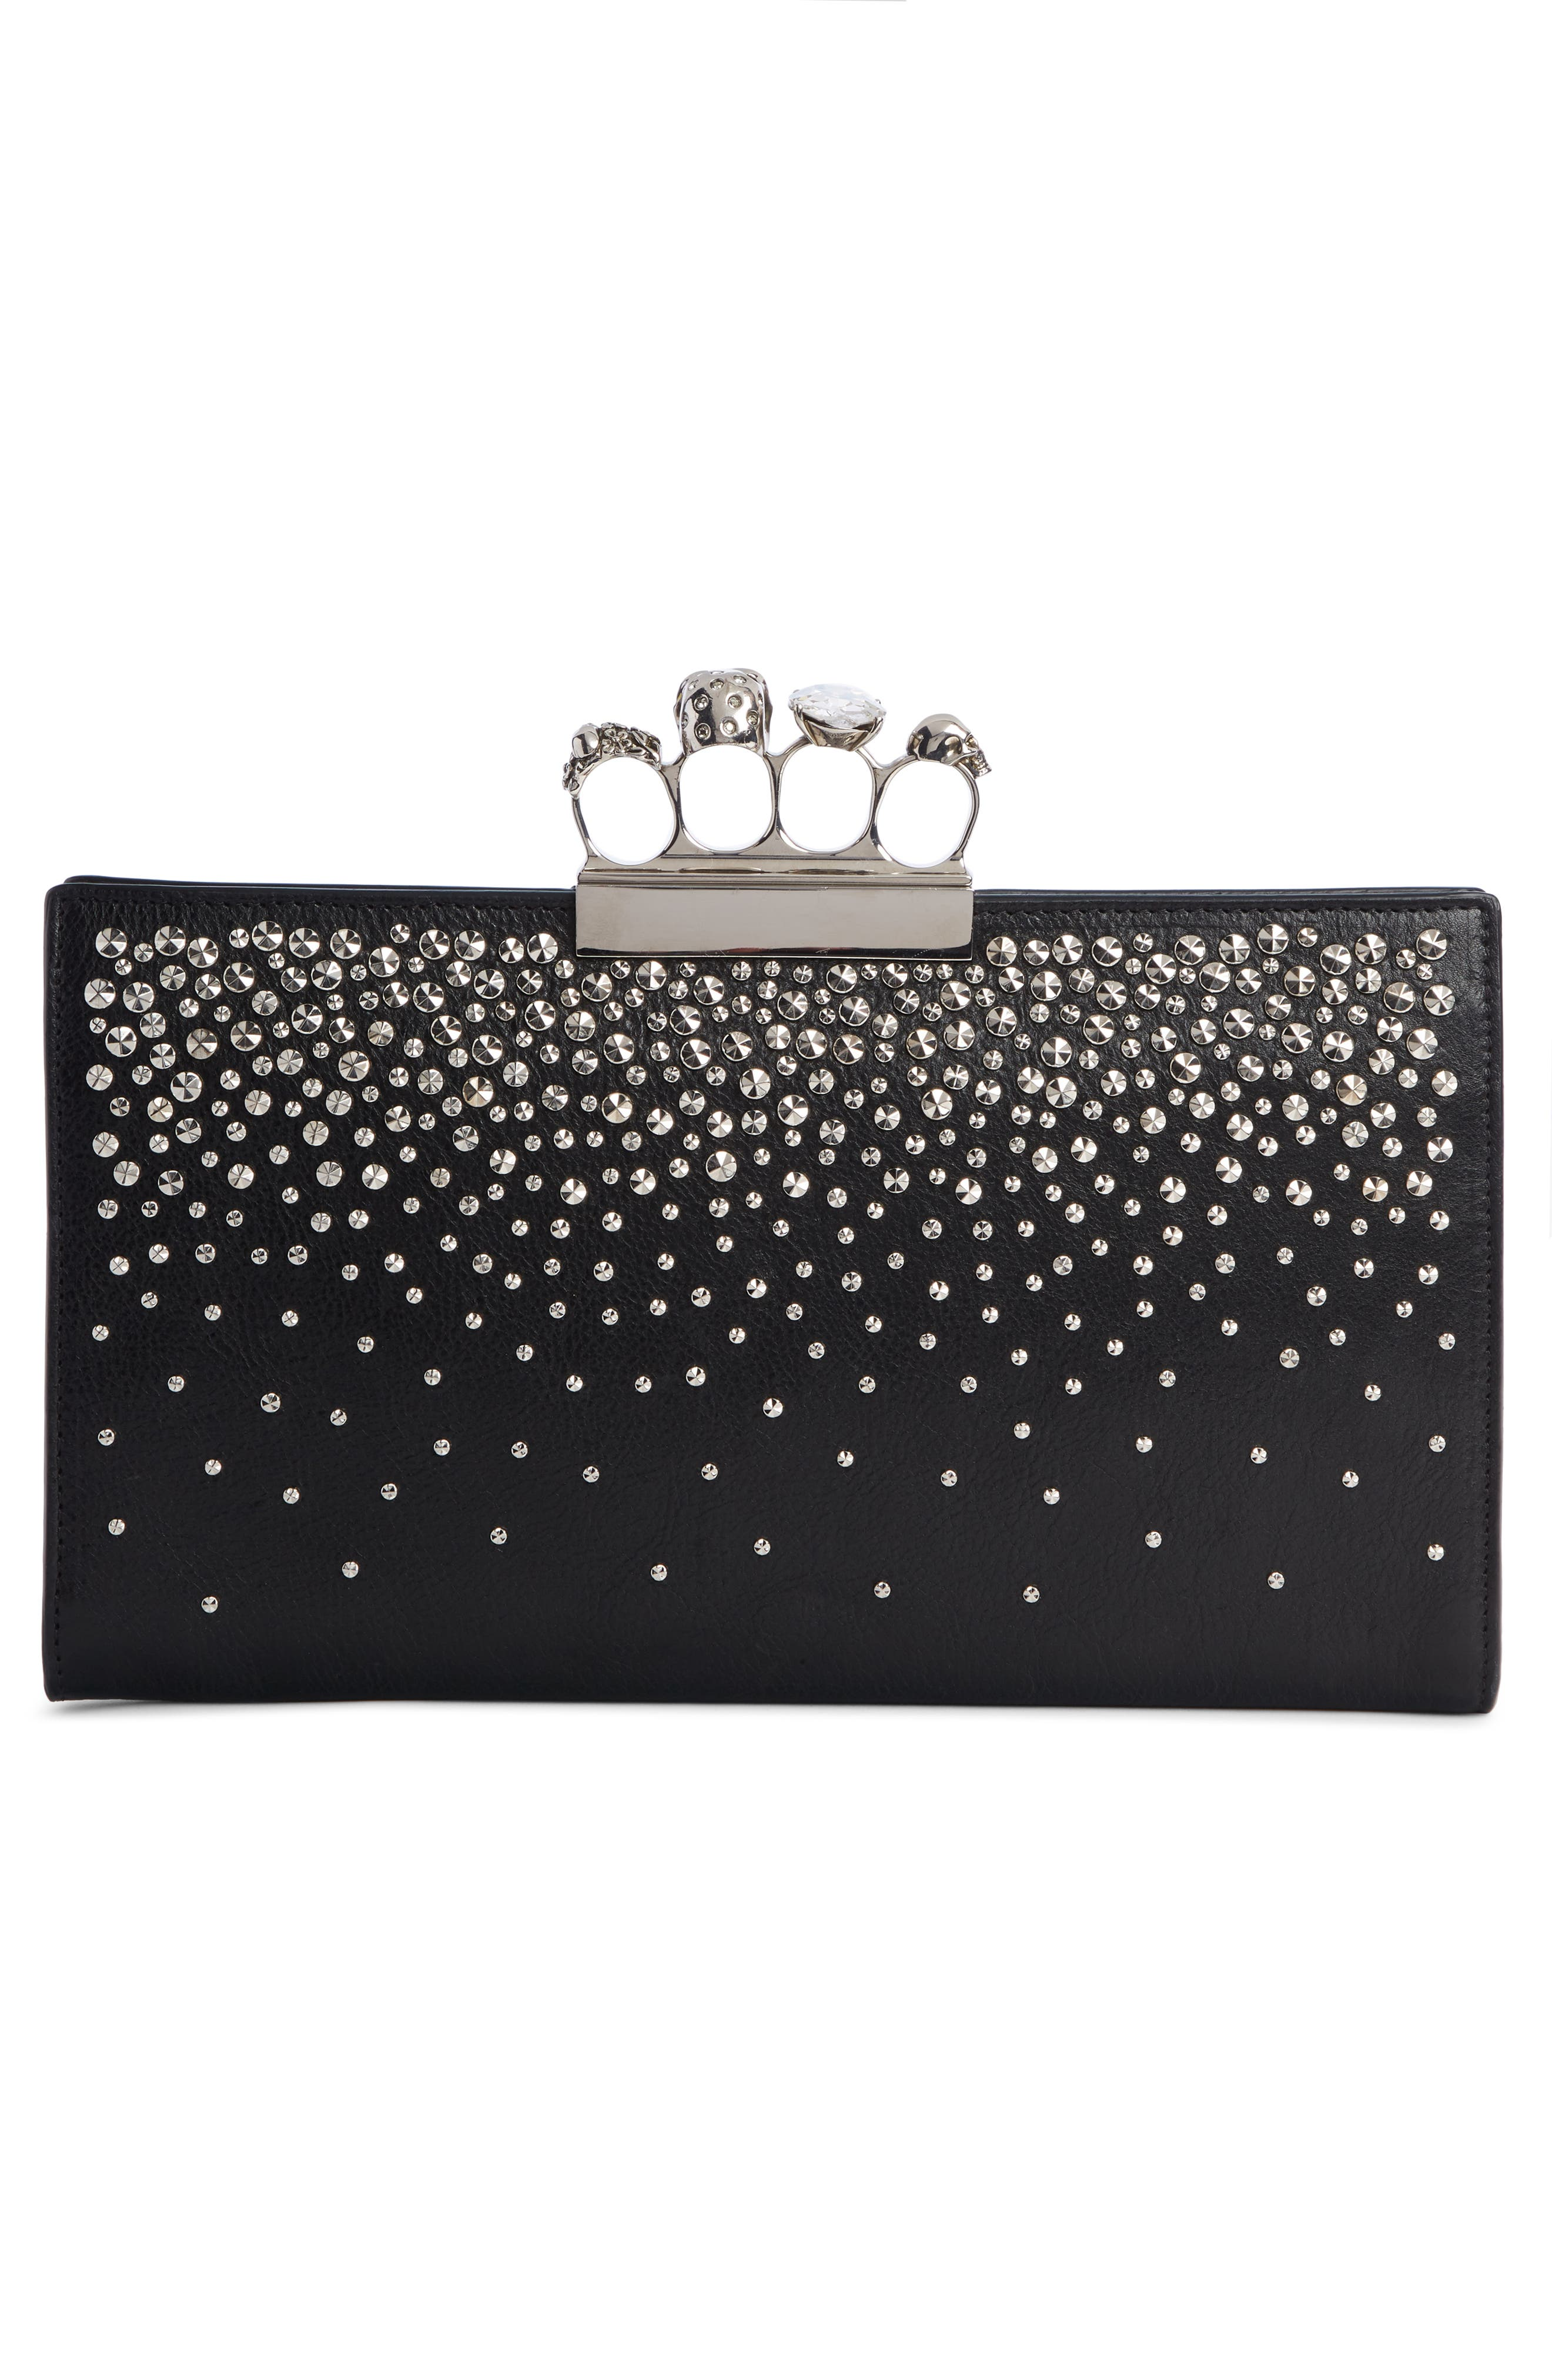 Four Ring Studded Knuckle Clasp Leather Clutch,                             Alternate thumbnail 3, color,                             BLACK